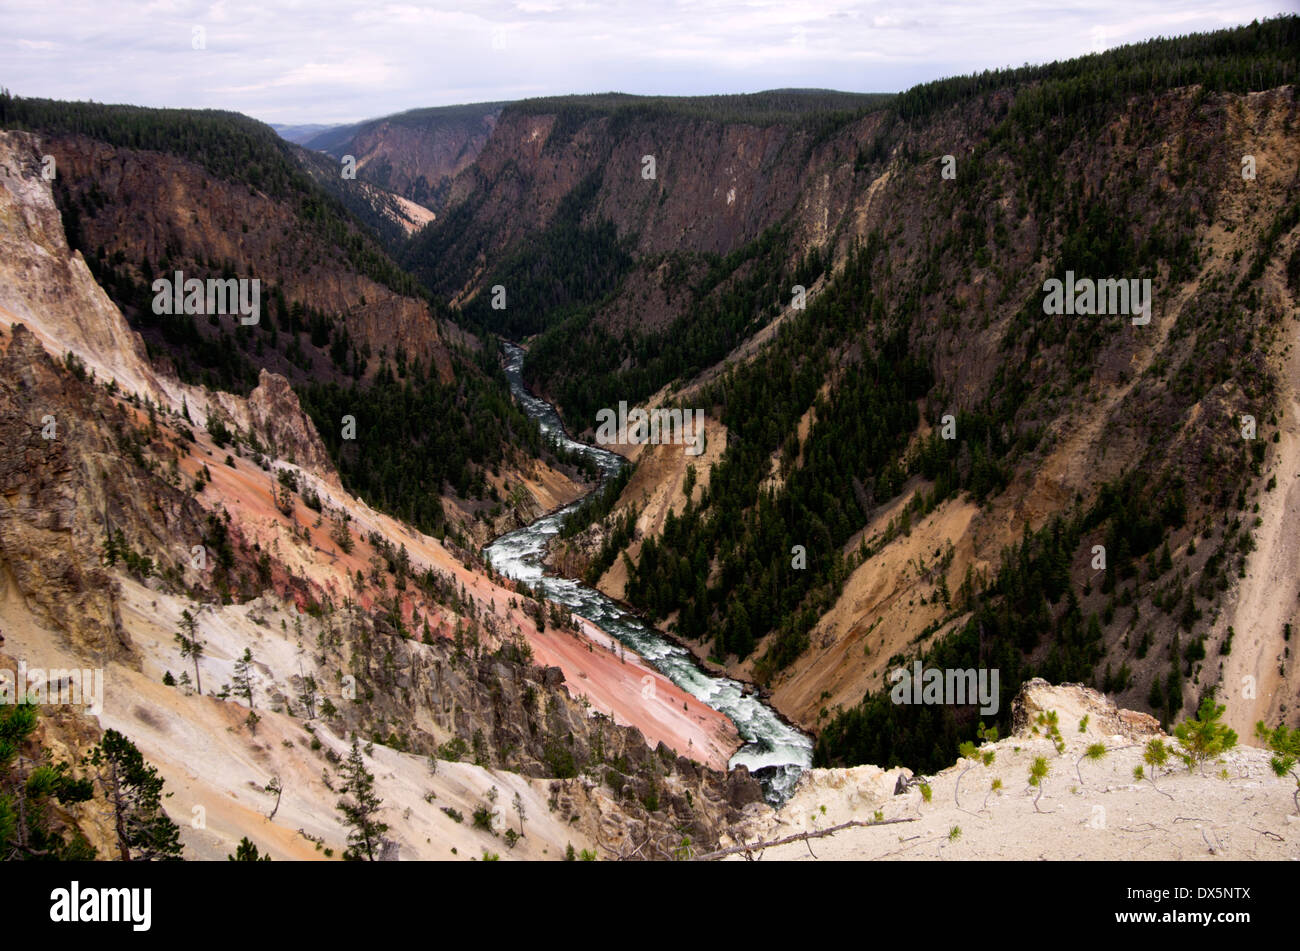 Inspiration Point, looking down on Yellowstone River as it heads down stream through the canyon - Stock Image